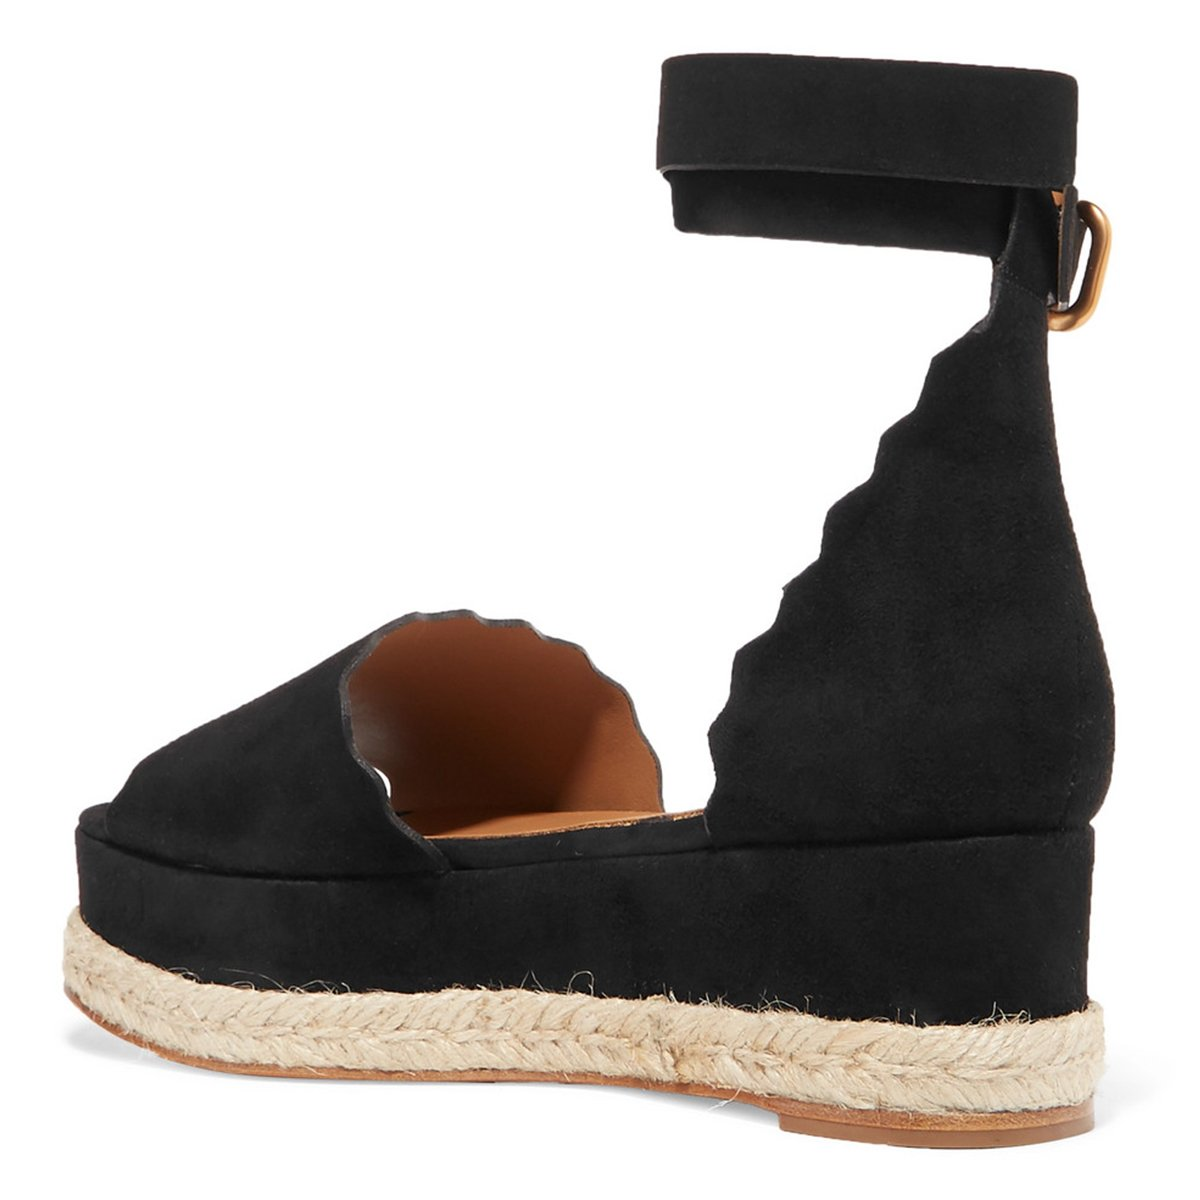 YDN Women Espadrille Peep Sandals Toe Ankle Straps Wedge Sandals Peep Low Heels Platform Shoes with Buckle B07FYBWZWS 9.5 M US|Black 2dd898